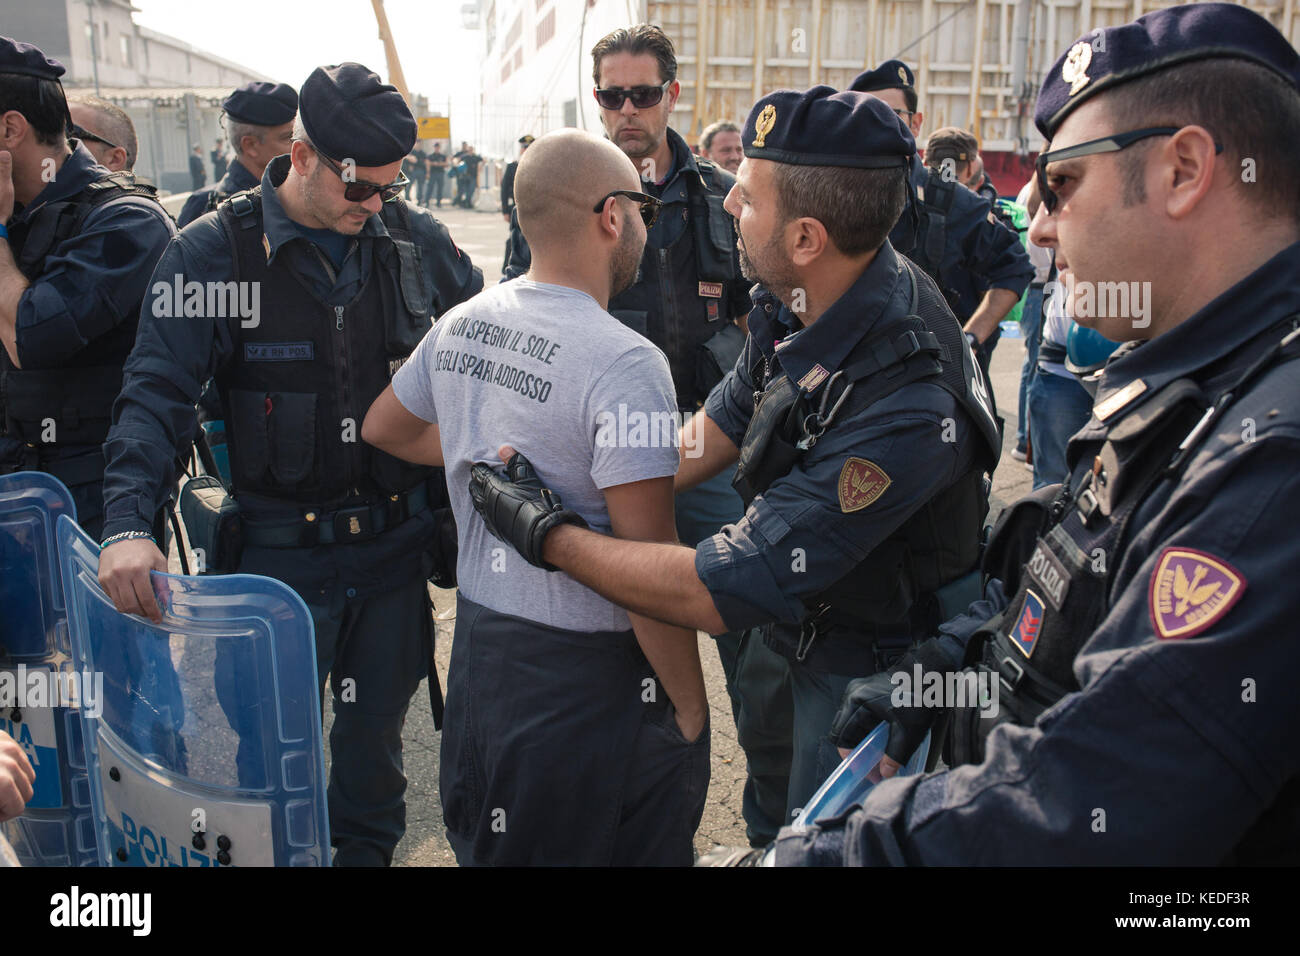 Naples, Italy. 19th Oct, 2017. The 'NO G7' Protest Group at the port of Naples, ready to embark for Ischia, - Stock Image